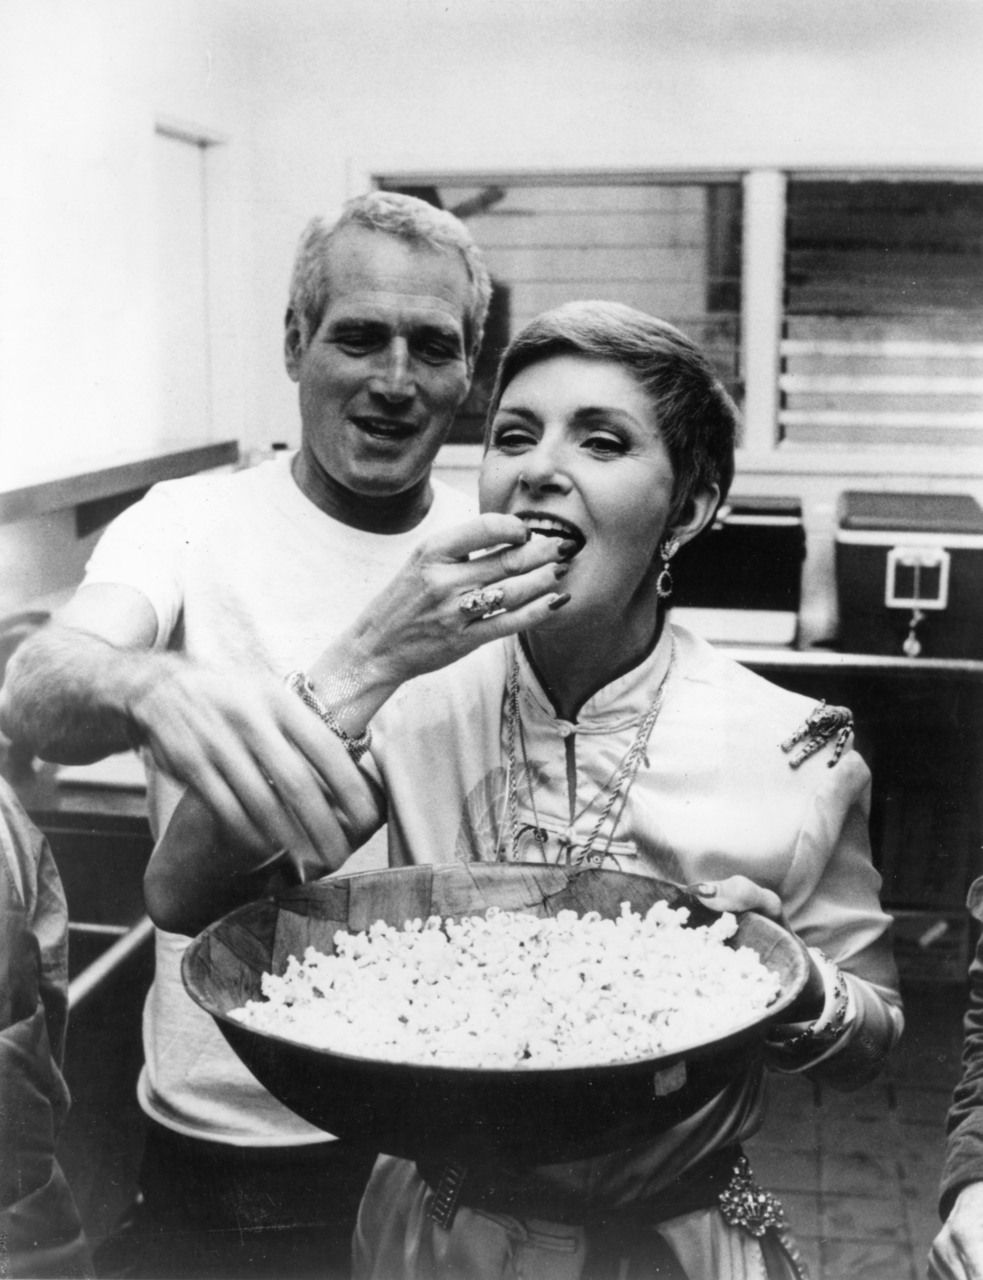 Paul newman and joanne woodward now that 39 s a couple that for Paul newman joanne woodward love story